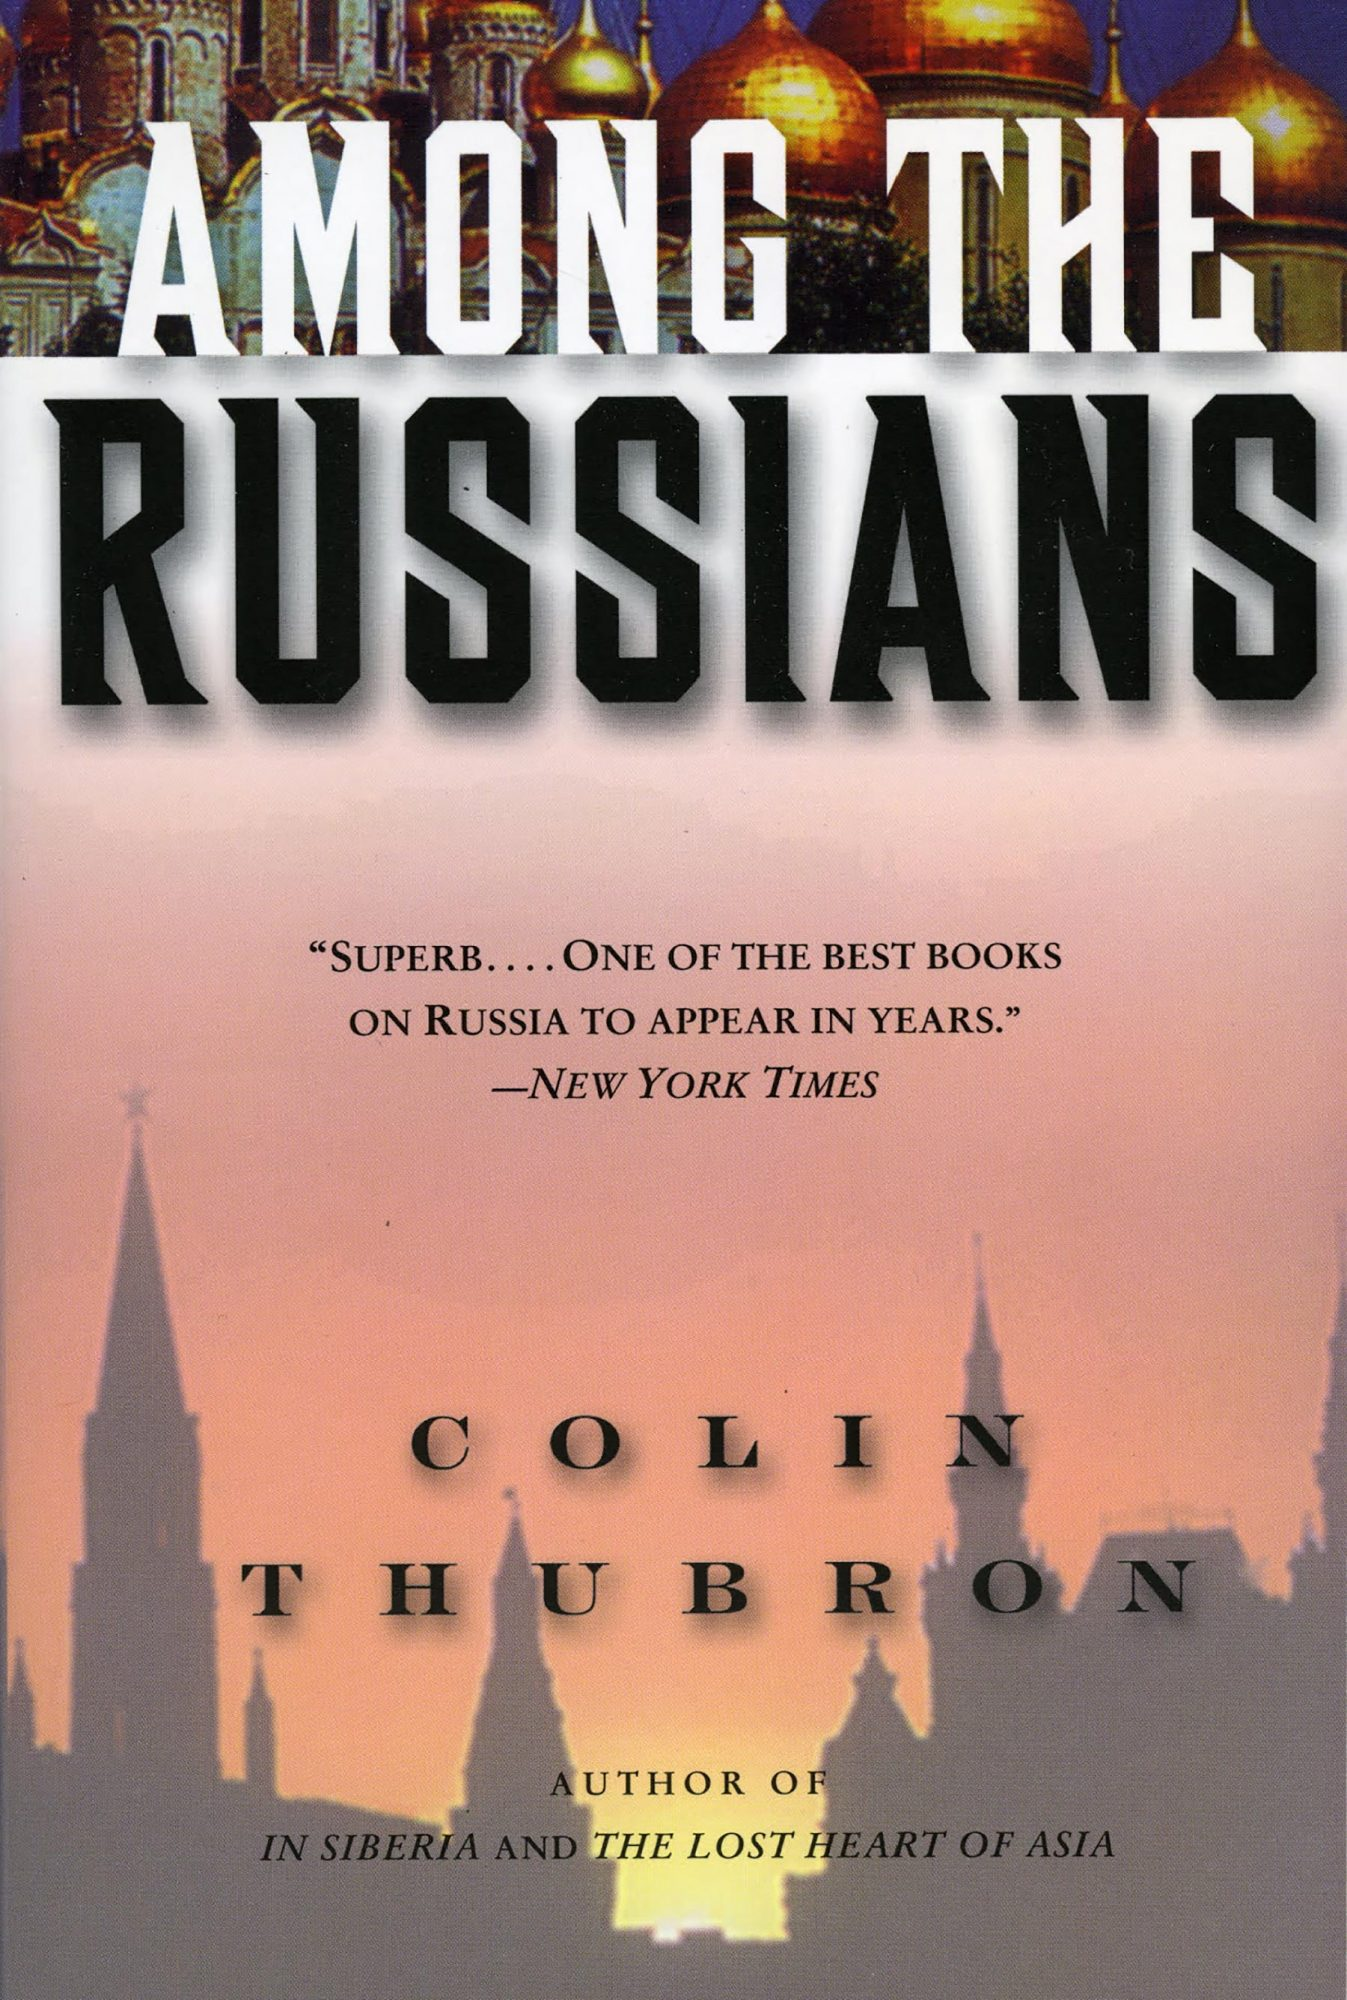 Among the RussiansBook by Colin Thubron CR: HarperCollins